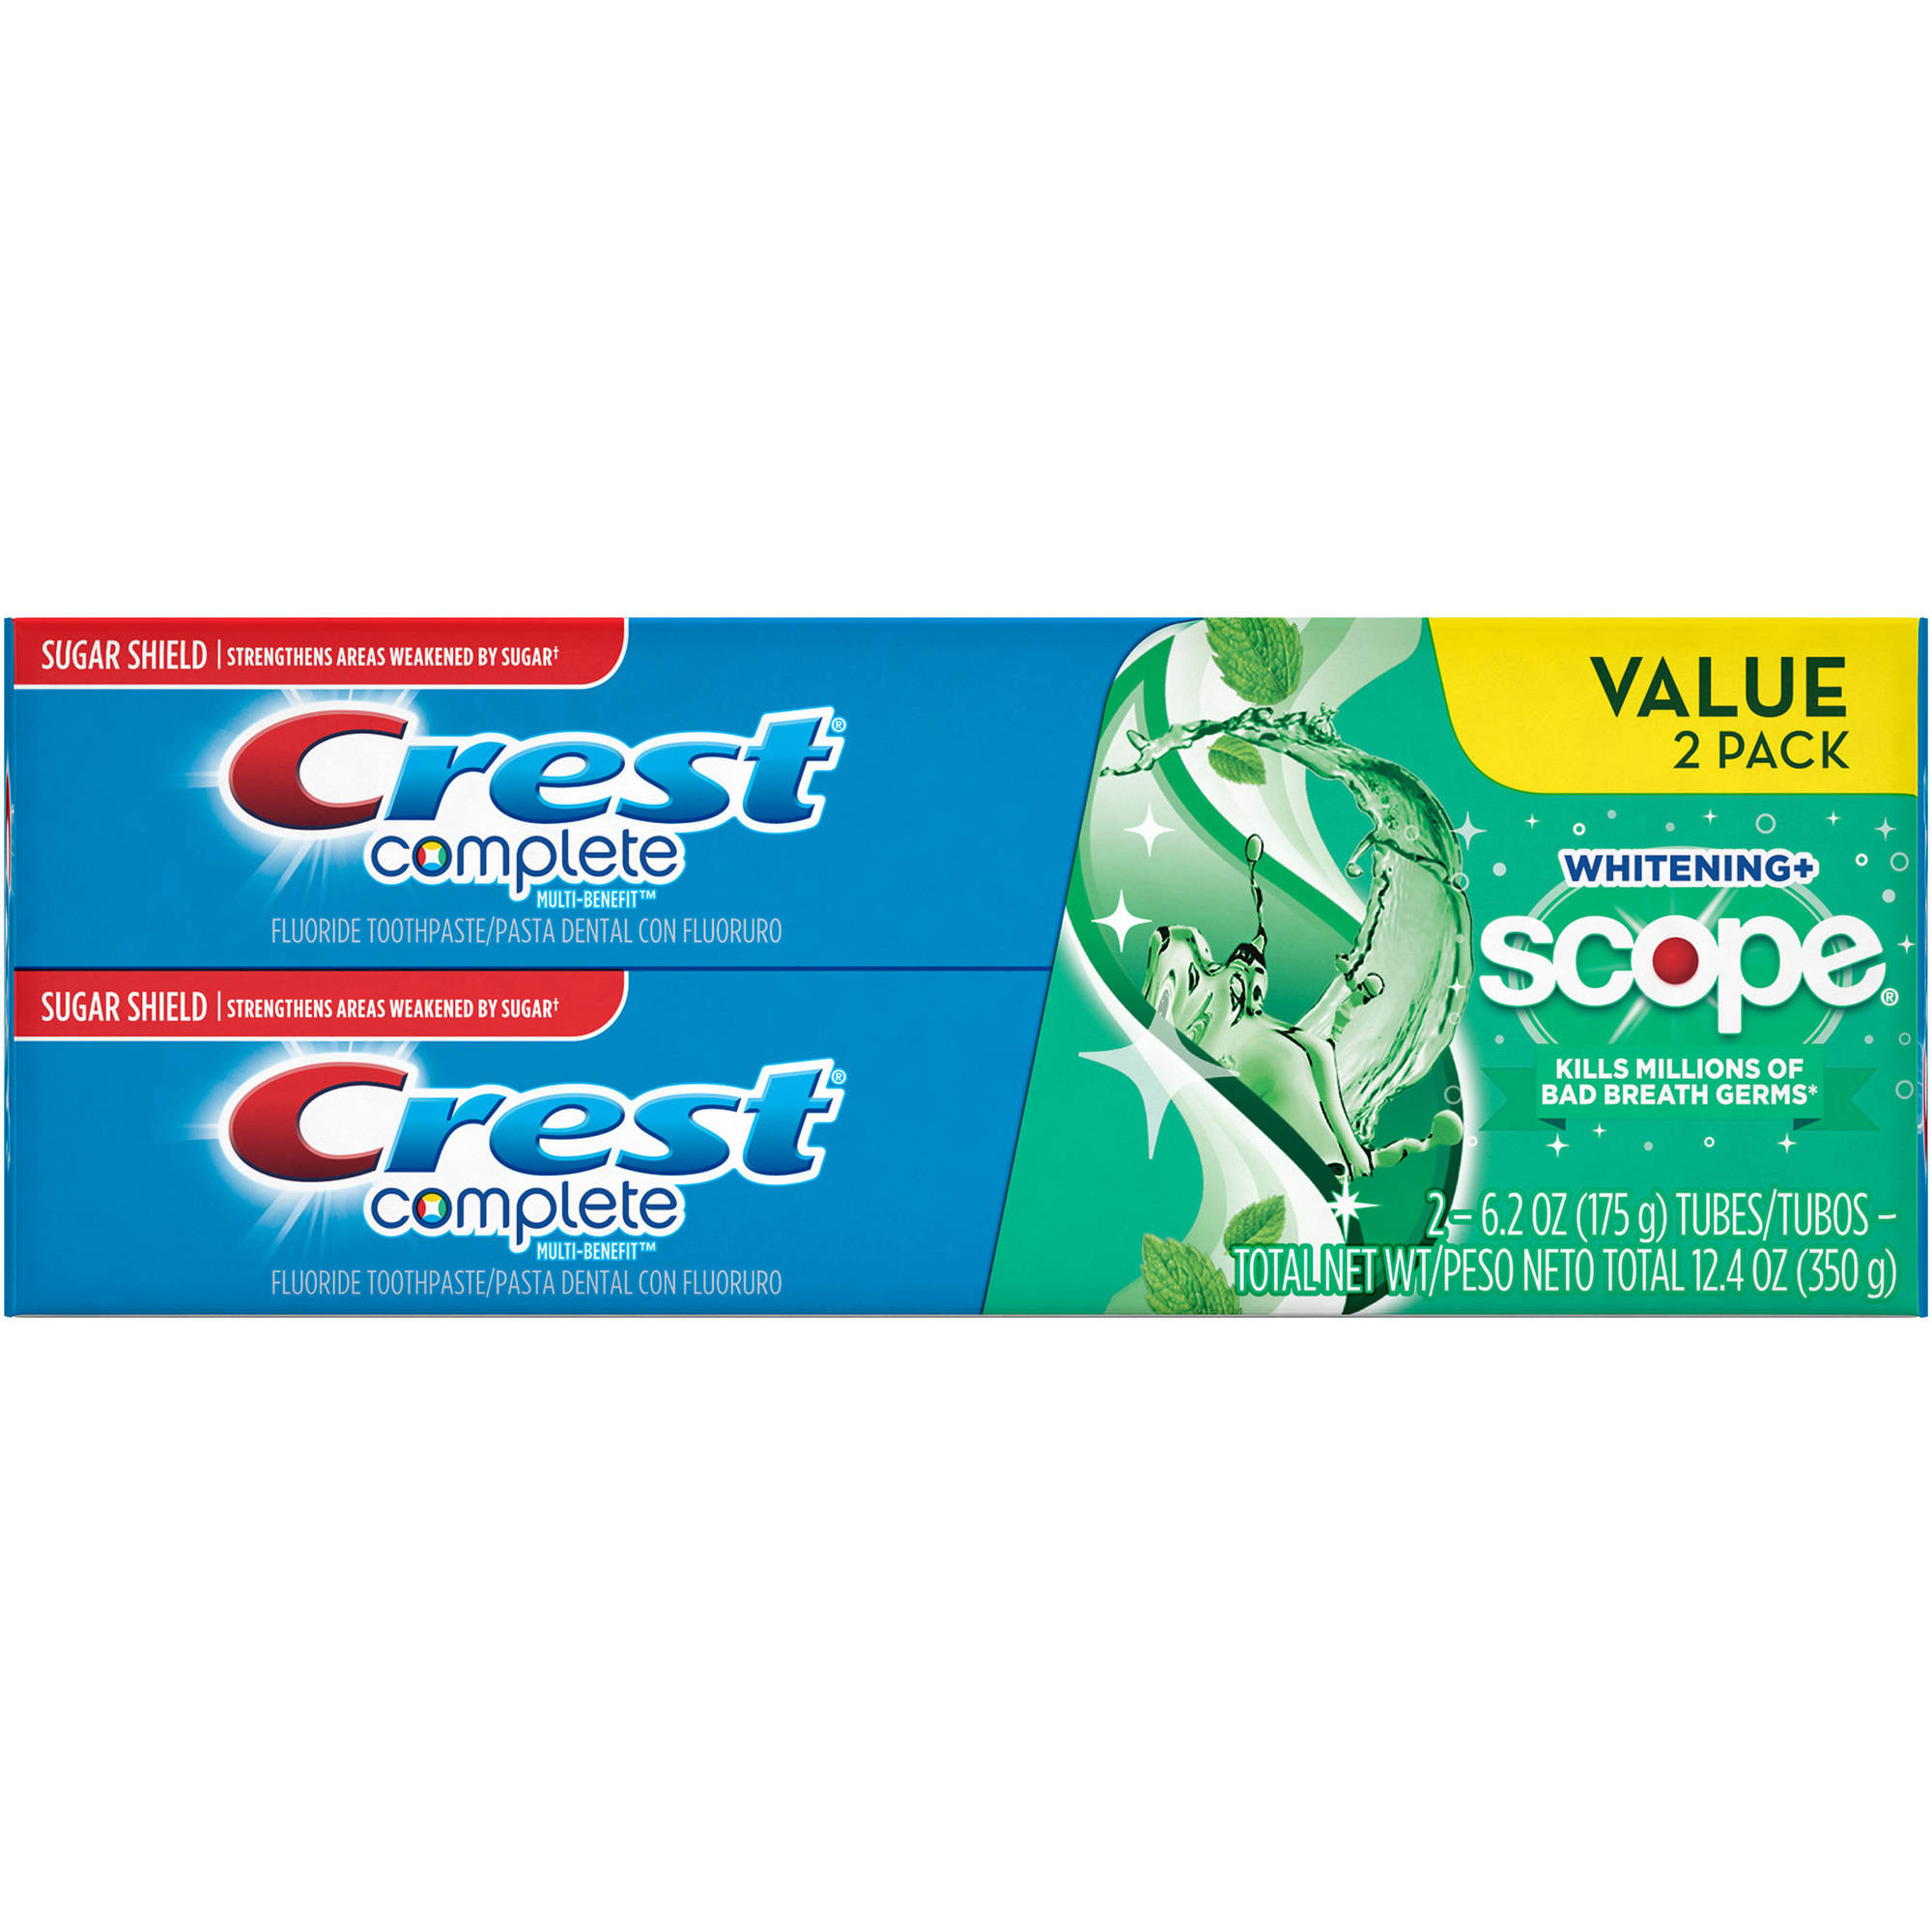 Crest Complete Whitening + Scope Minty Fresh Striped Toothpaste, 6.2 oz, (Pack of 2)